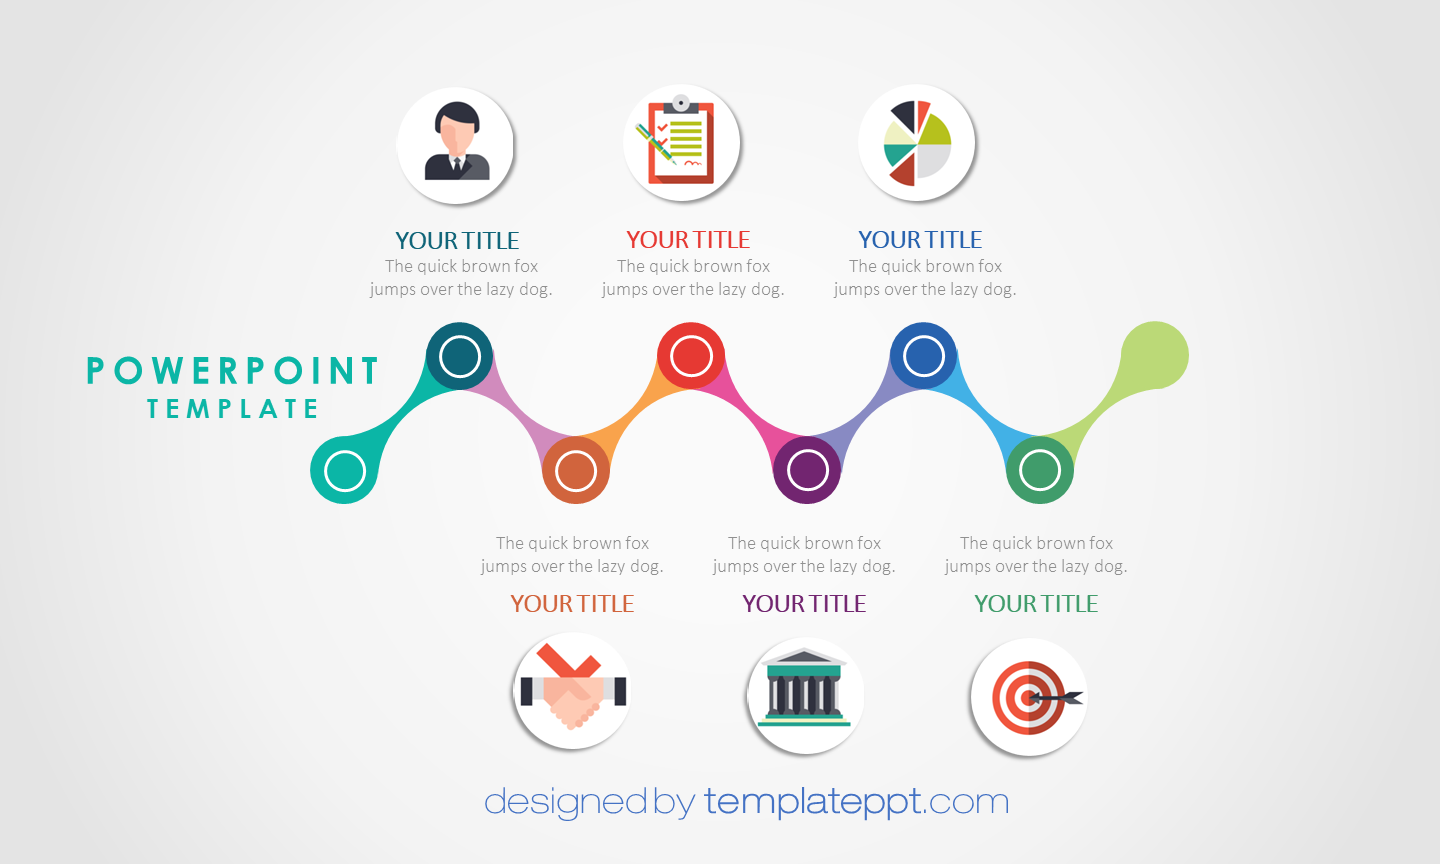 Powerpoint Presentation Templates | Deck Design | วอลเปเปอร์